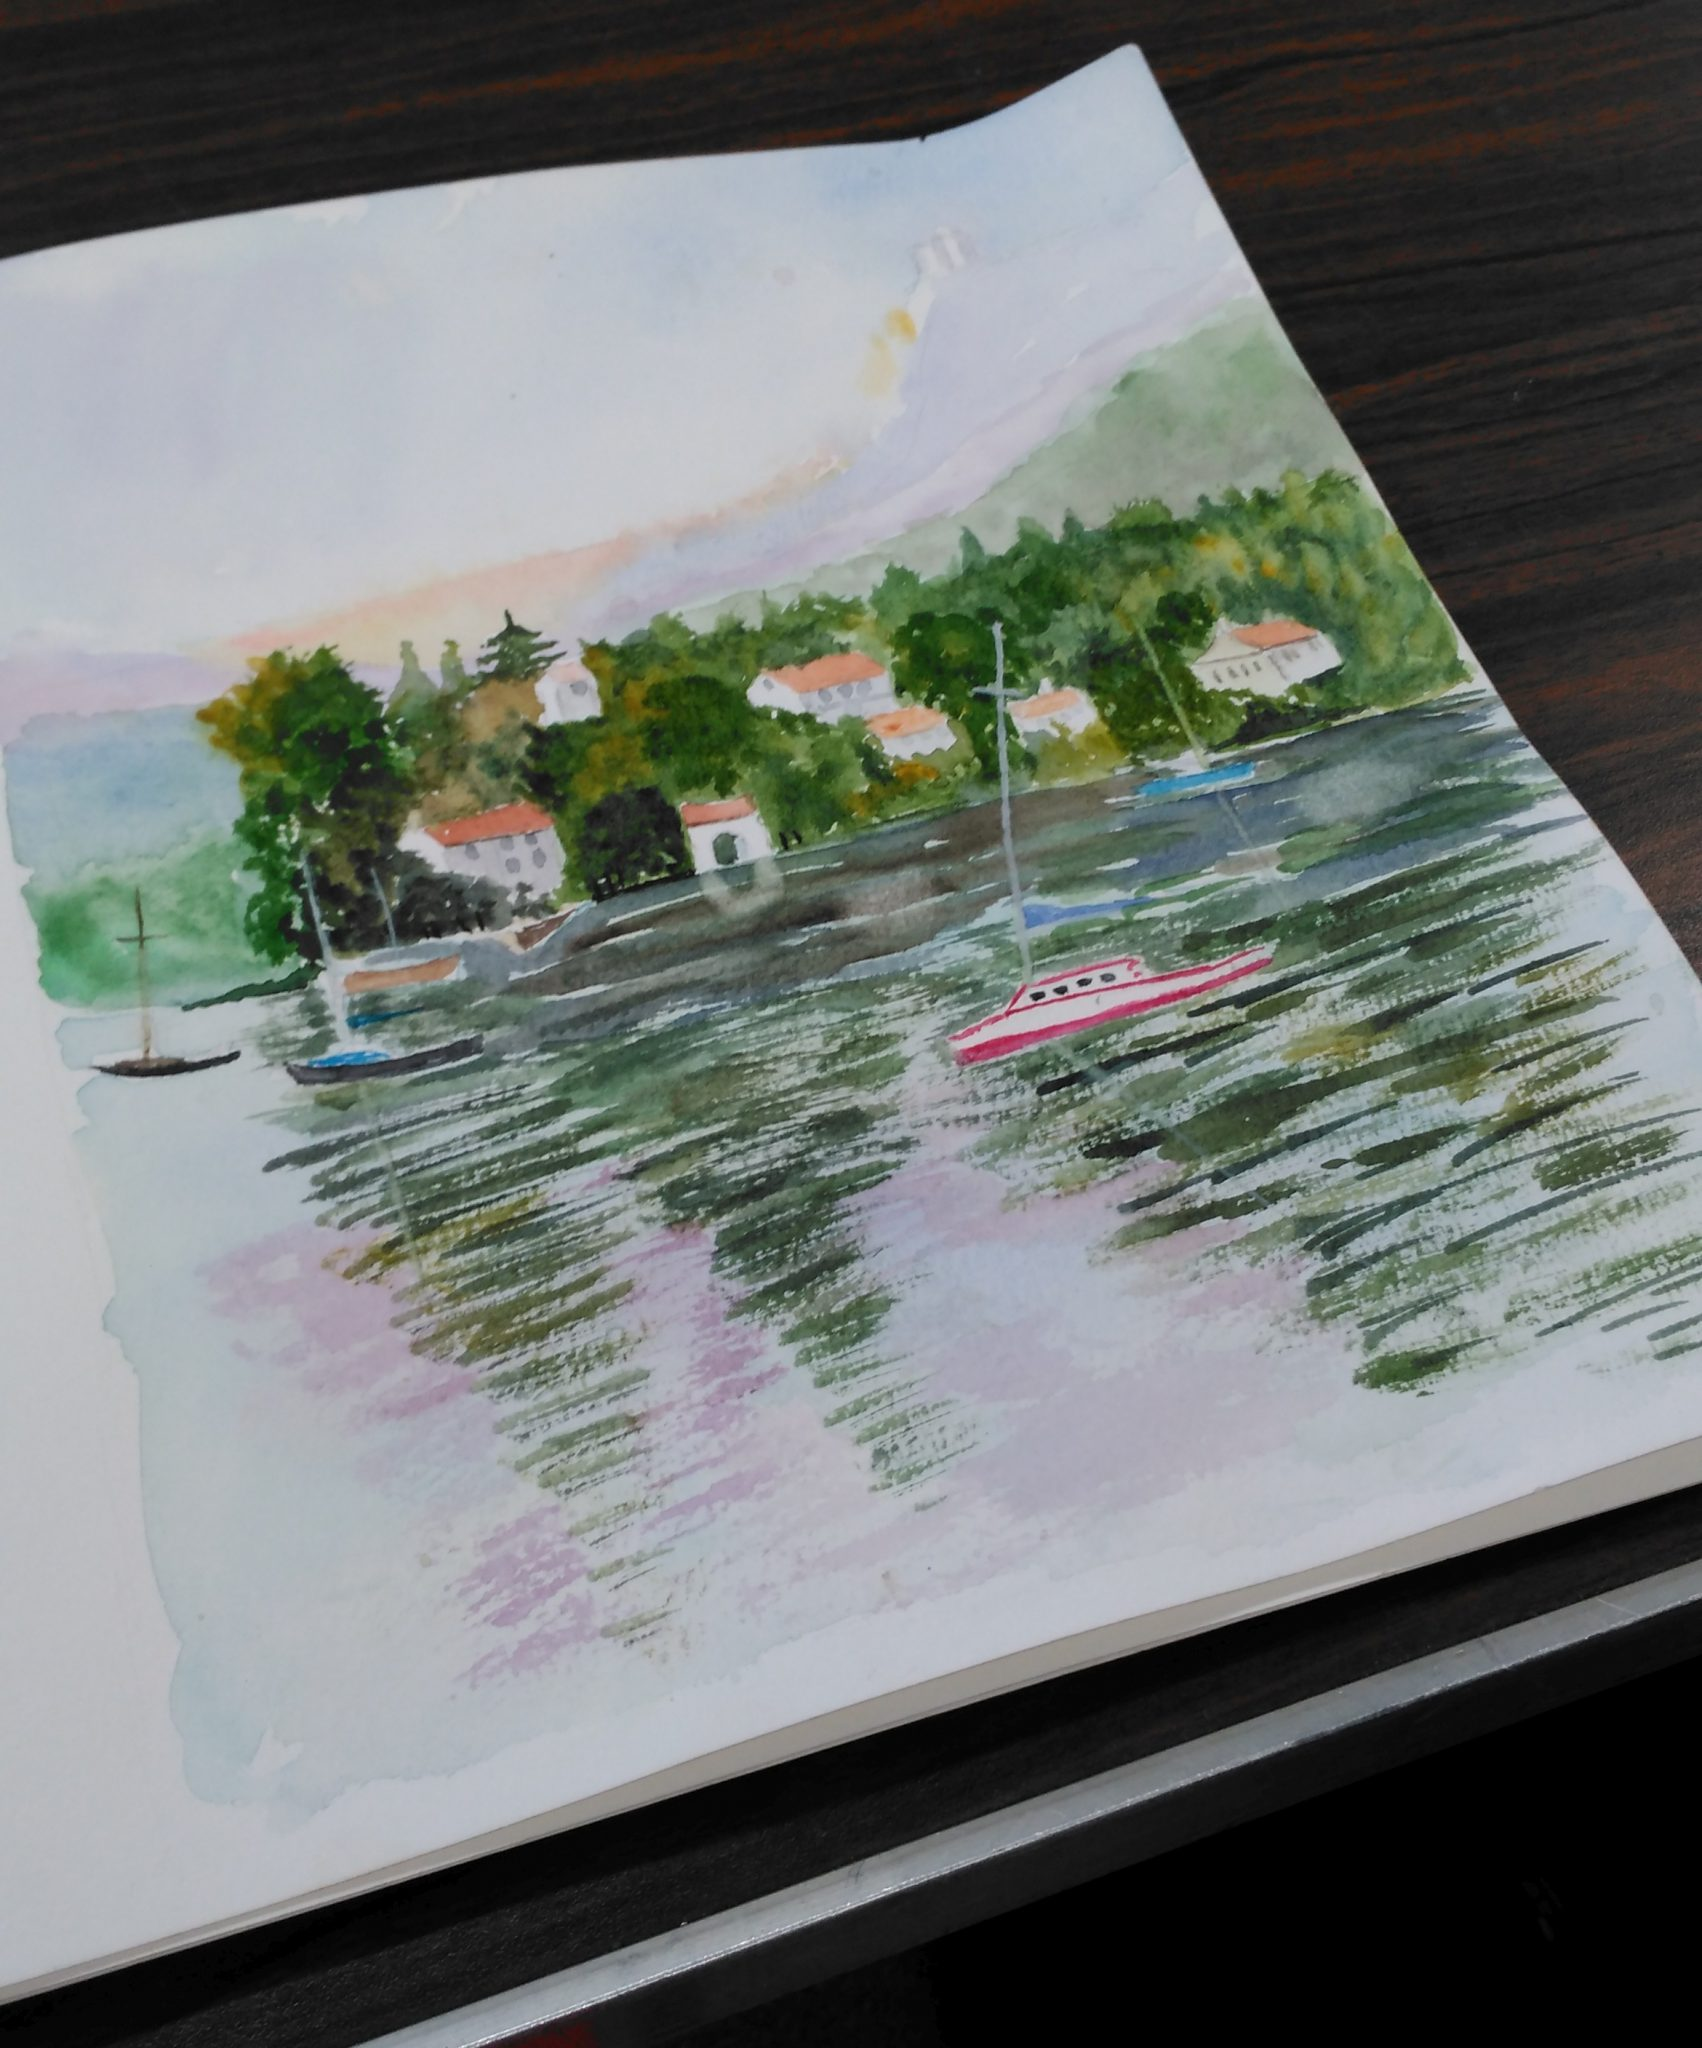 A sketchpad opened to a scene of boats on a lake.